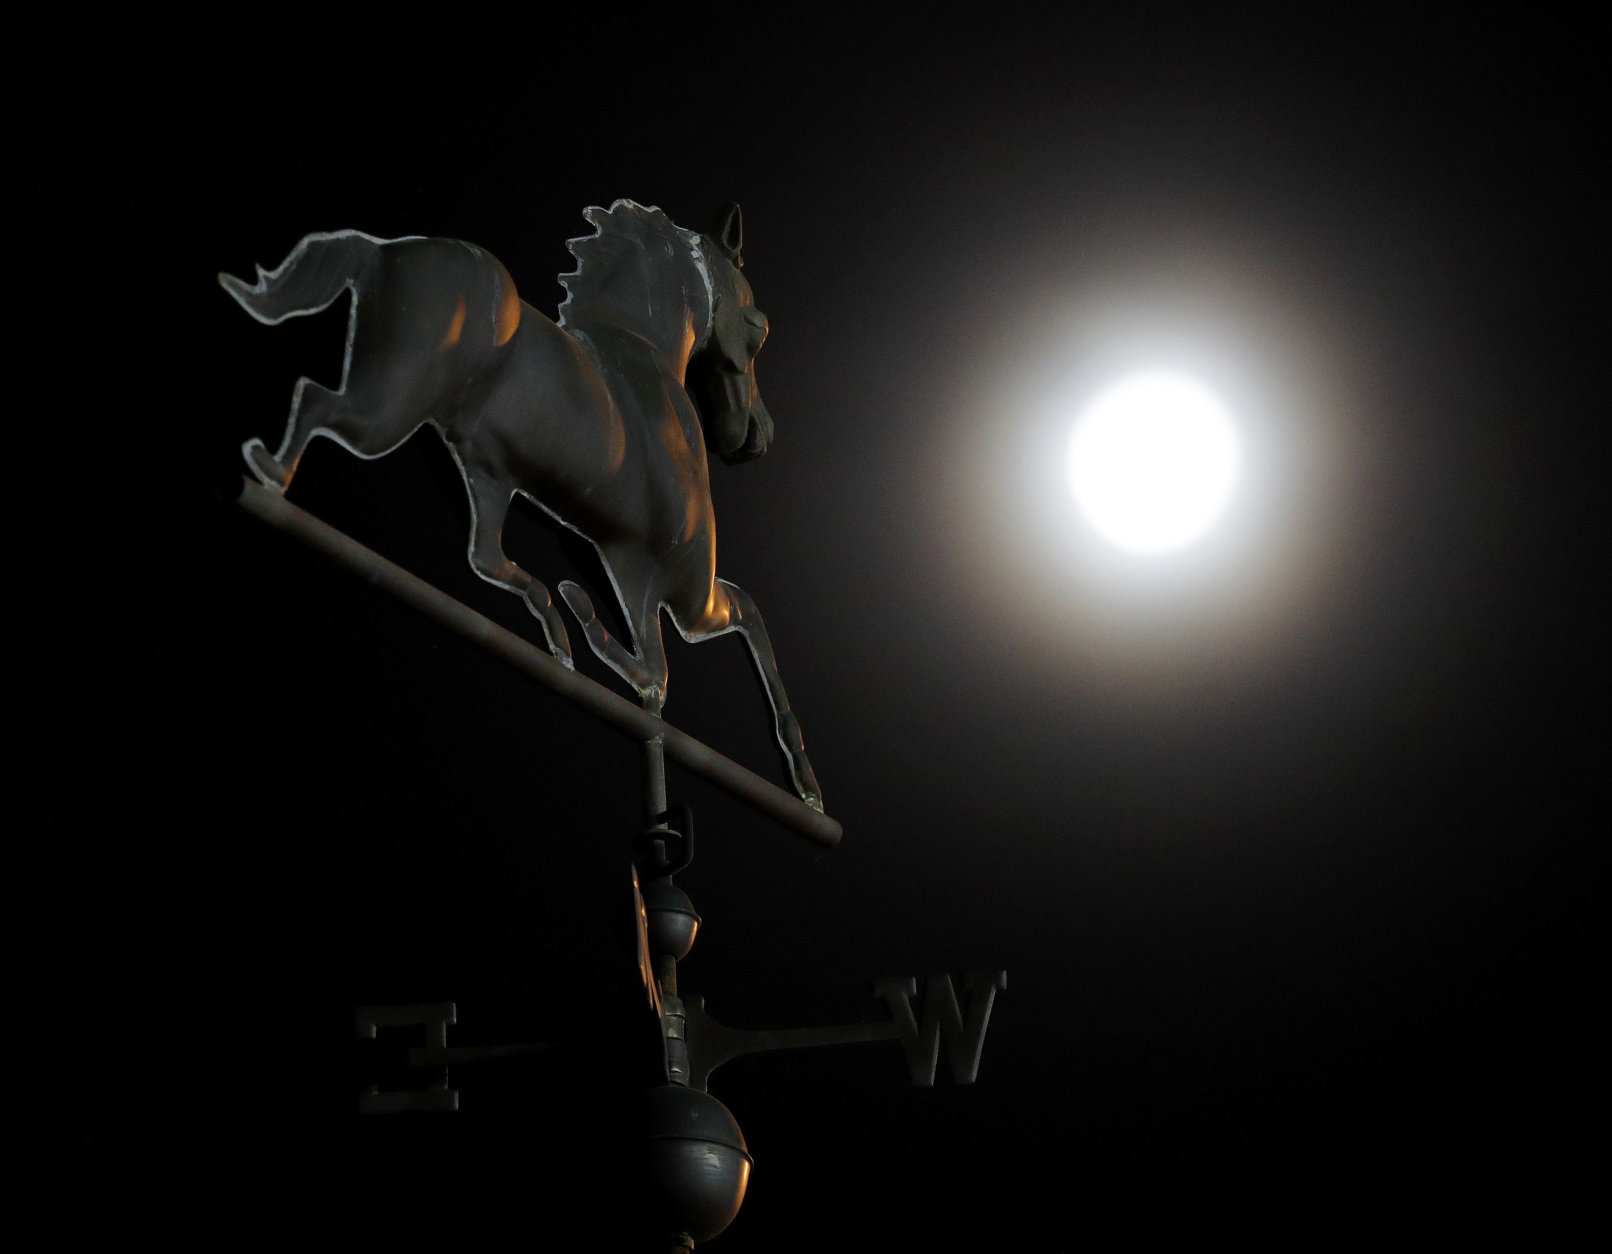 The waning full moon shines on a weather vane during a morning workout at Churchill Downs Wednesday, May 2, 2018, in Louisville, Ky. The 144th running of the Kentucky Derby is scheduled for Saturday, May 5. (AP Photo/Charlie Riedel)